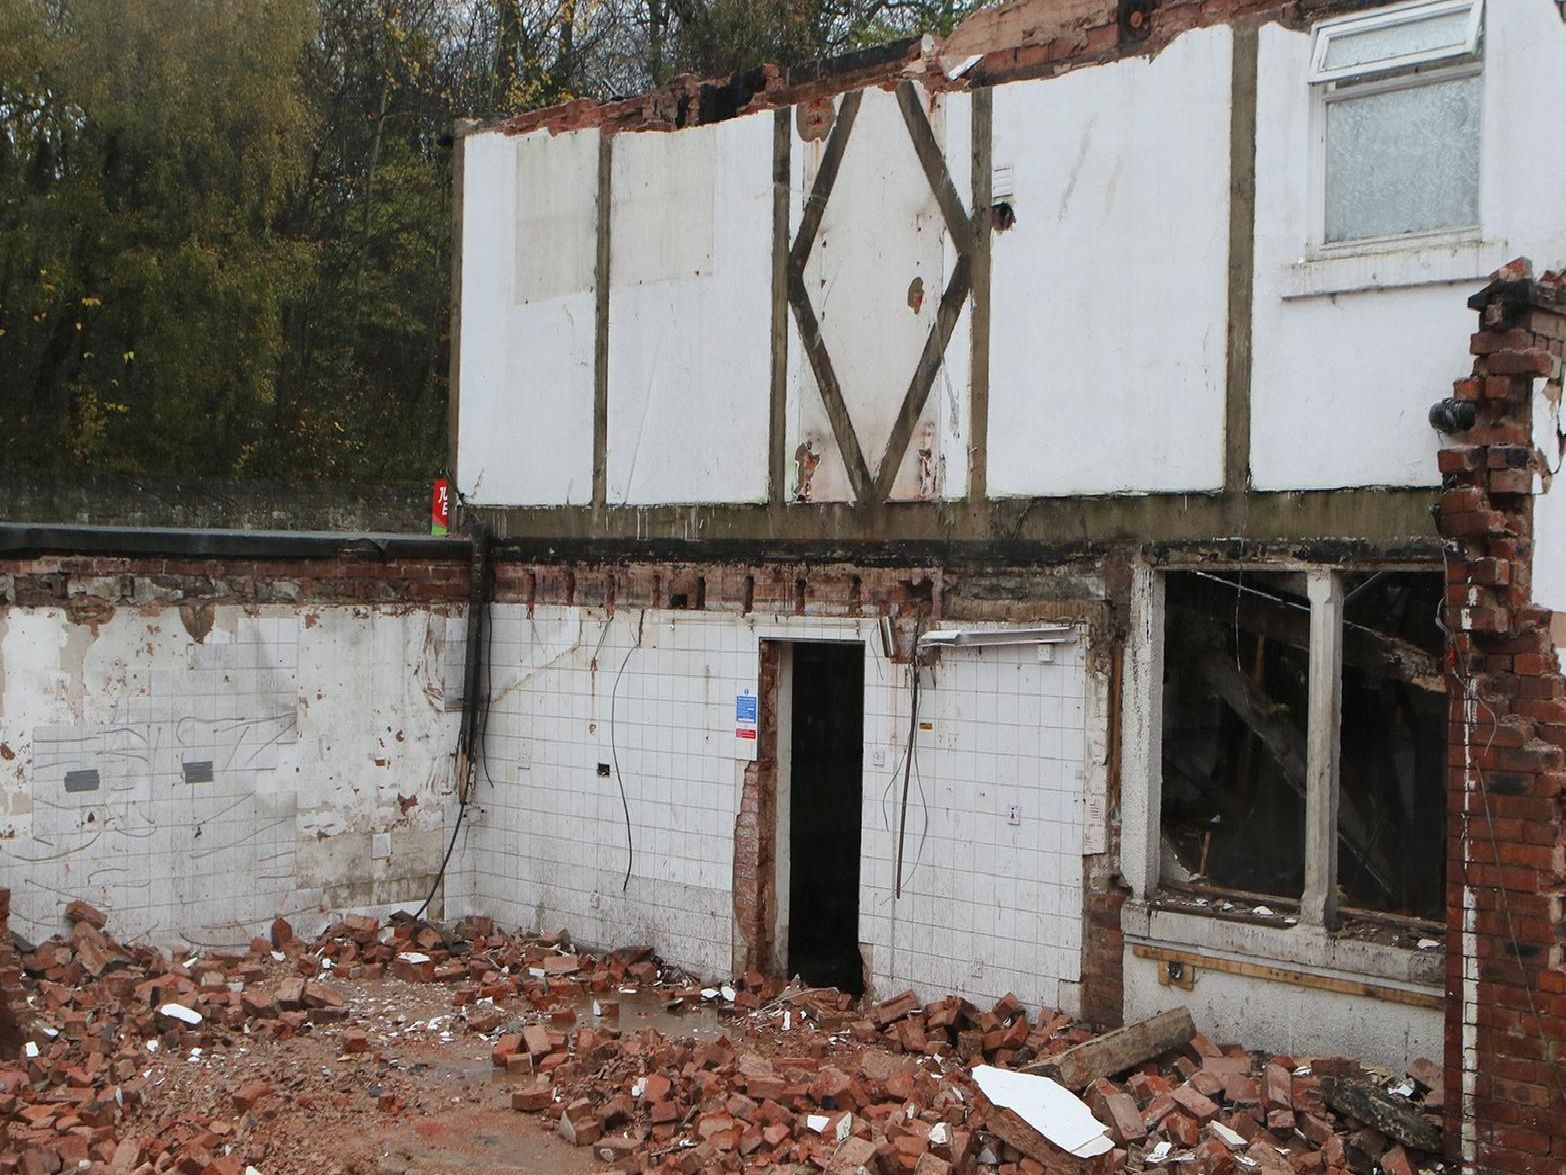 Demolition of the former China Fong restaurant and Ye Old Plough Inn on Chesterfield Road North.